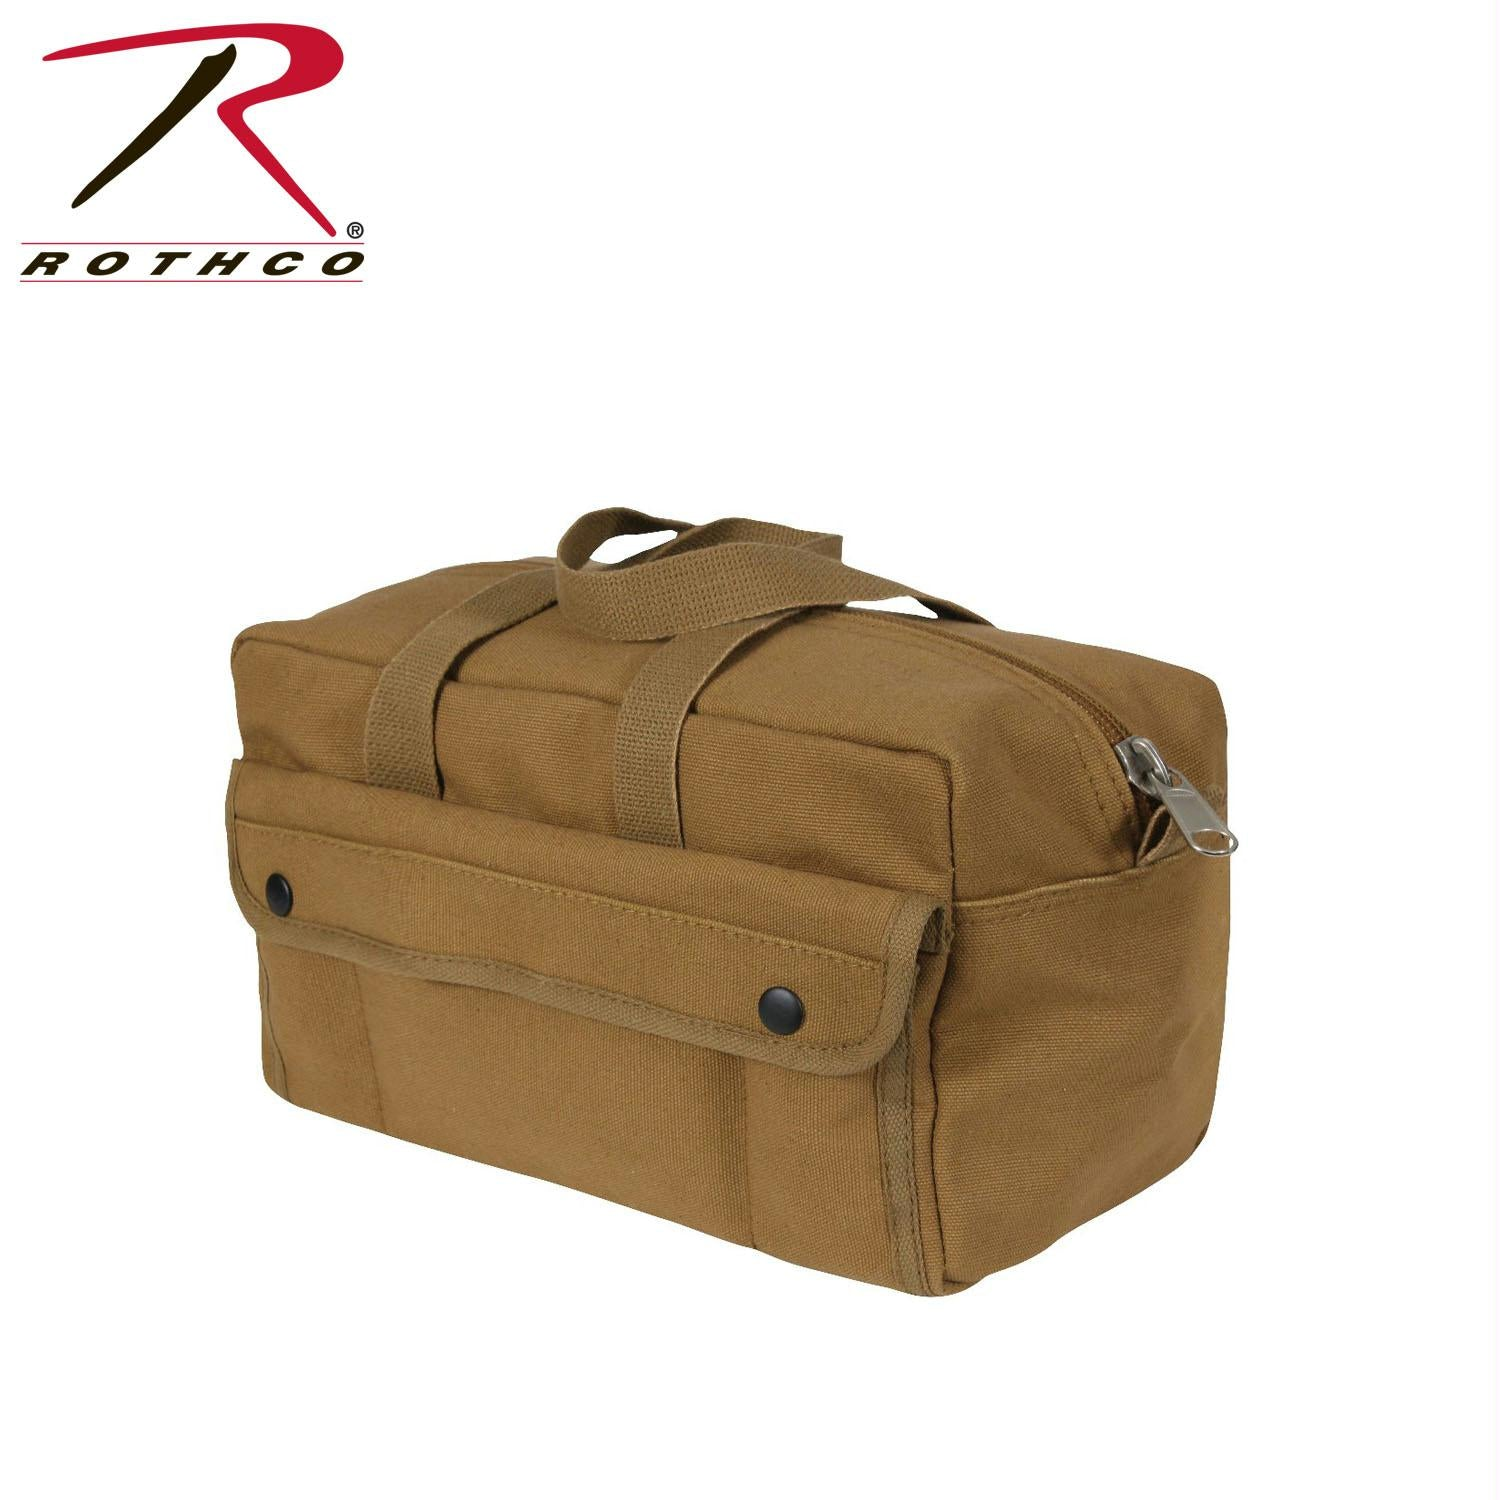 Rothco G.I. Type Mechanics Tool Bags - Coyote Brown